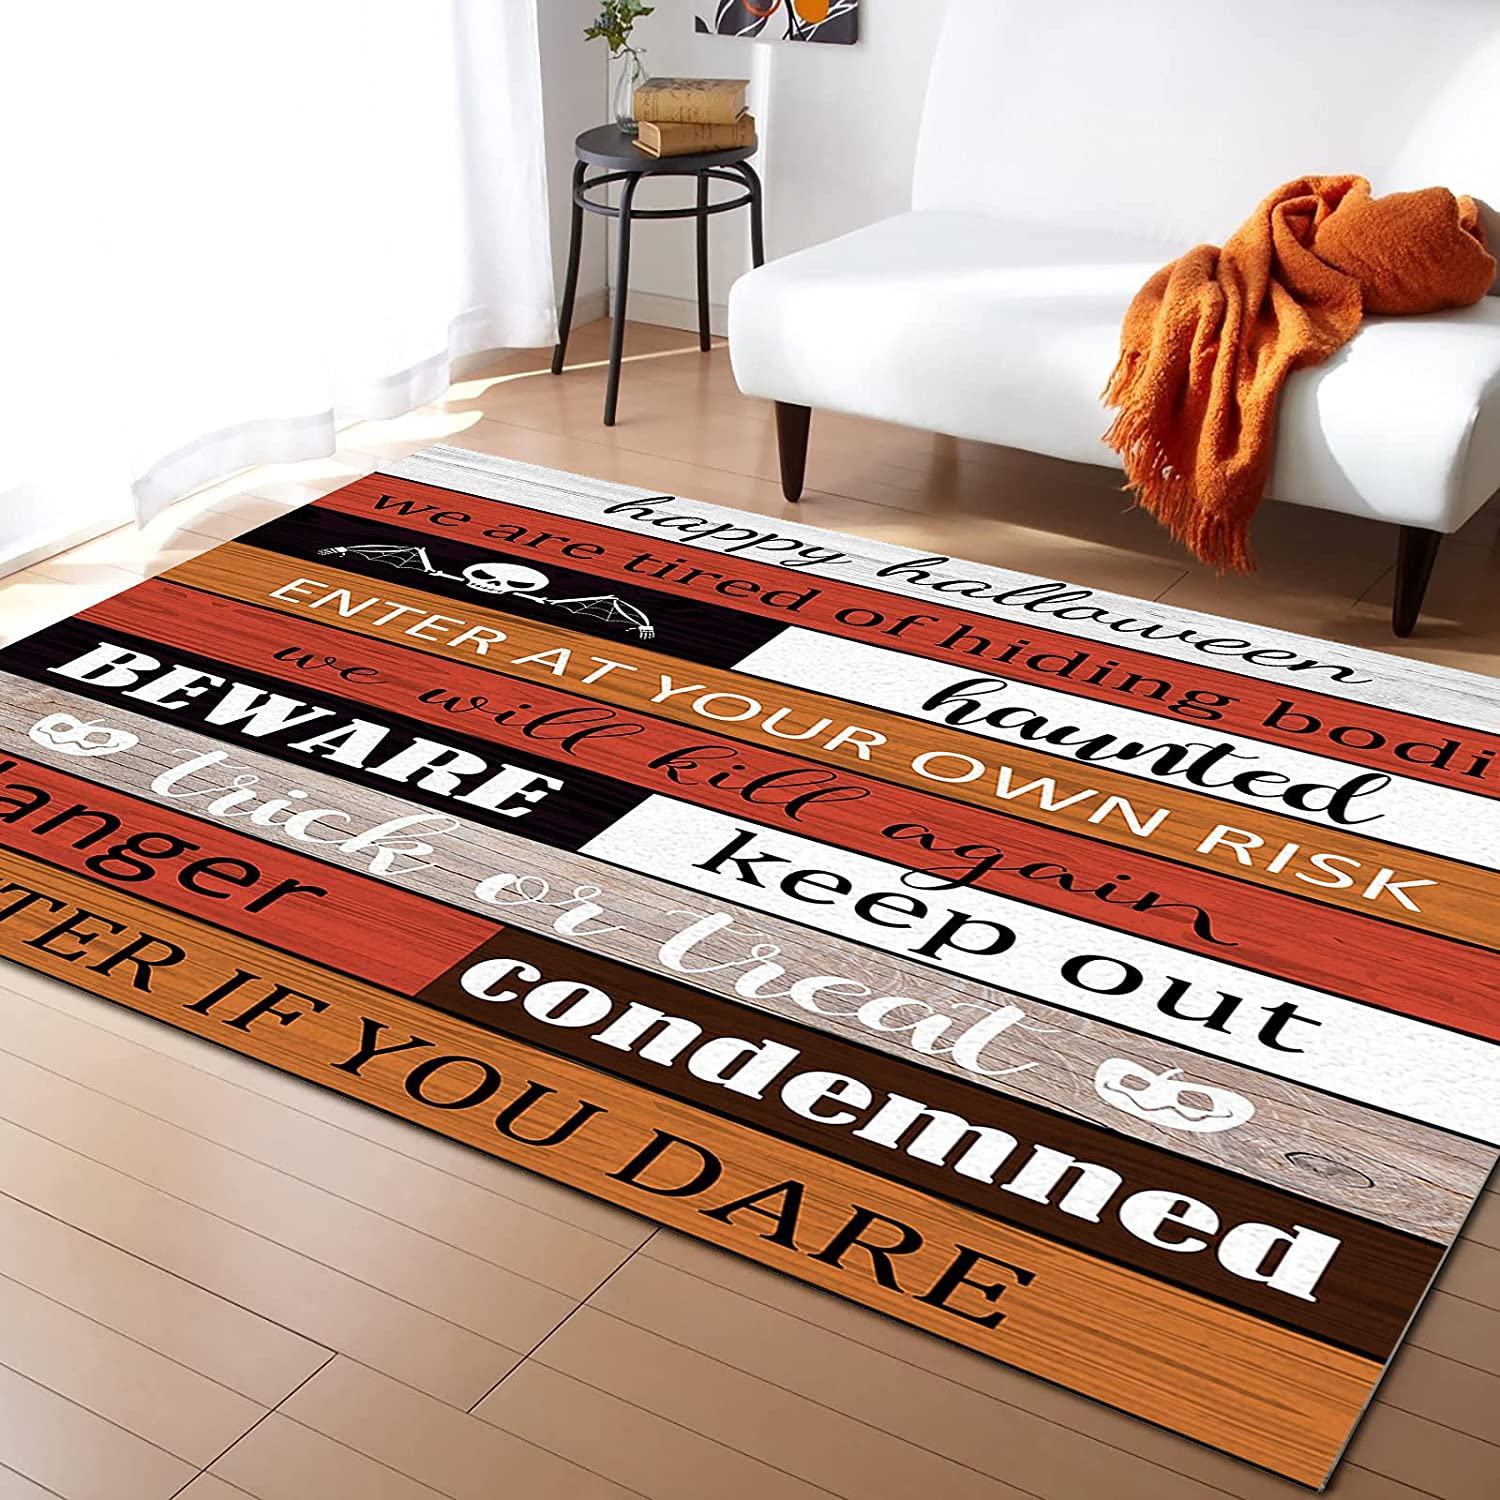 Contemporary Non-Slip Area Rug Happy New products world's highest quality popular Retro Halloween Woo Colored Ranking TOP15